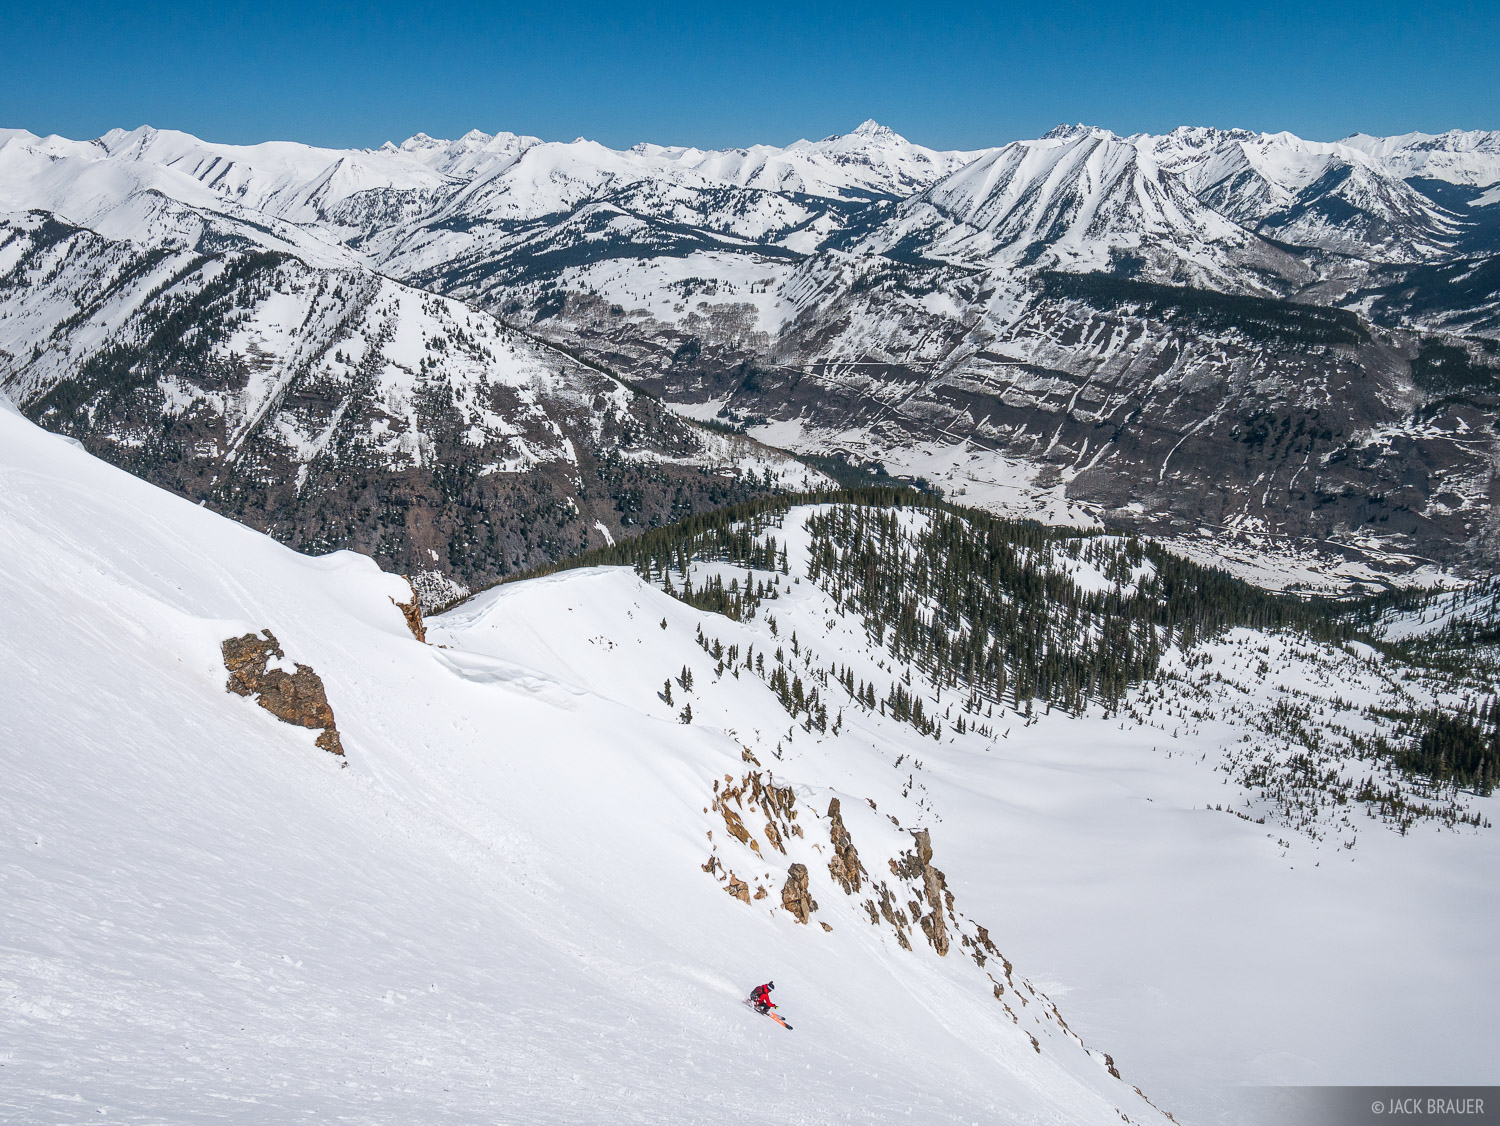 Paul DiG skis down the steep east face of Mount Emmons into Wolverine Bowl, Crested Butte, Colorado - May.